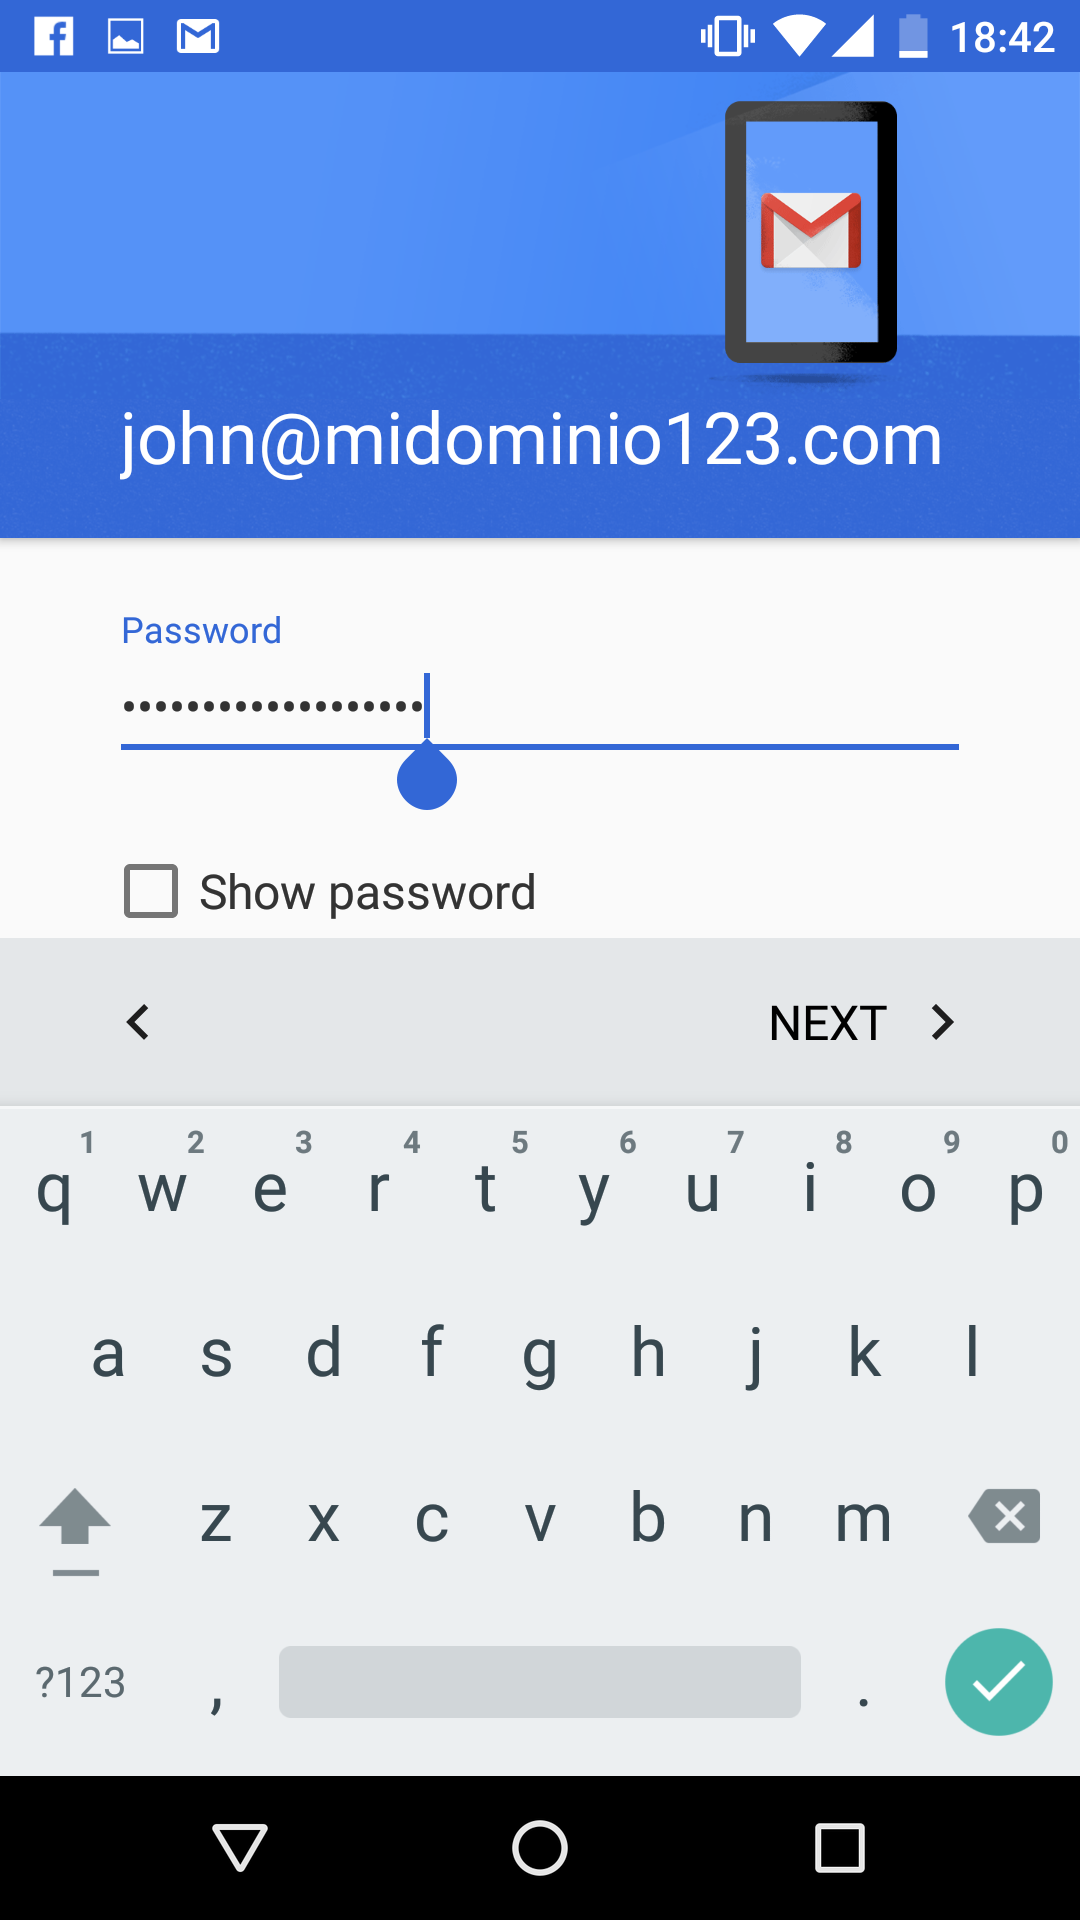 Configure an email account on Android 6 Marshmallow   Help Center